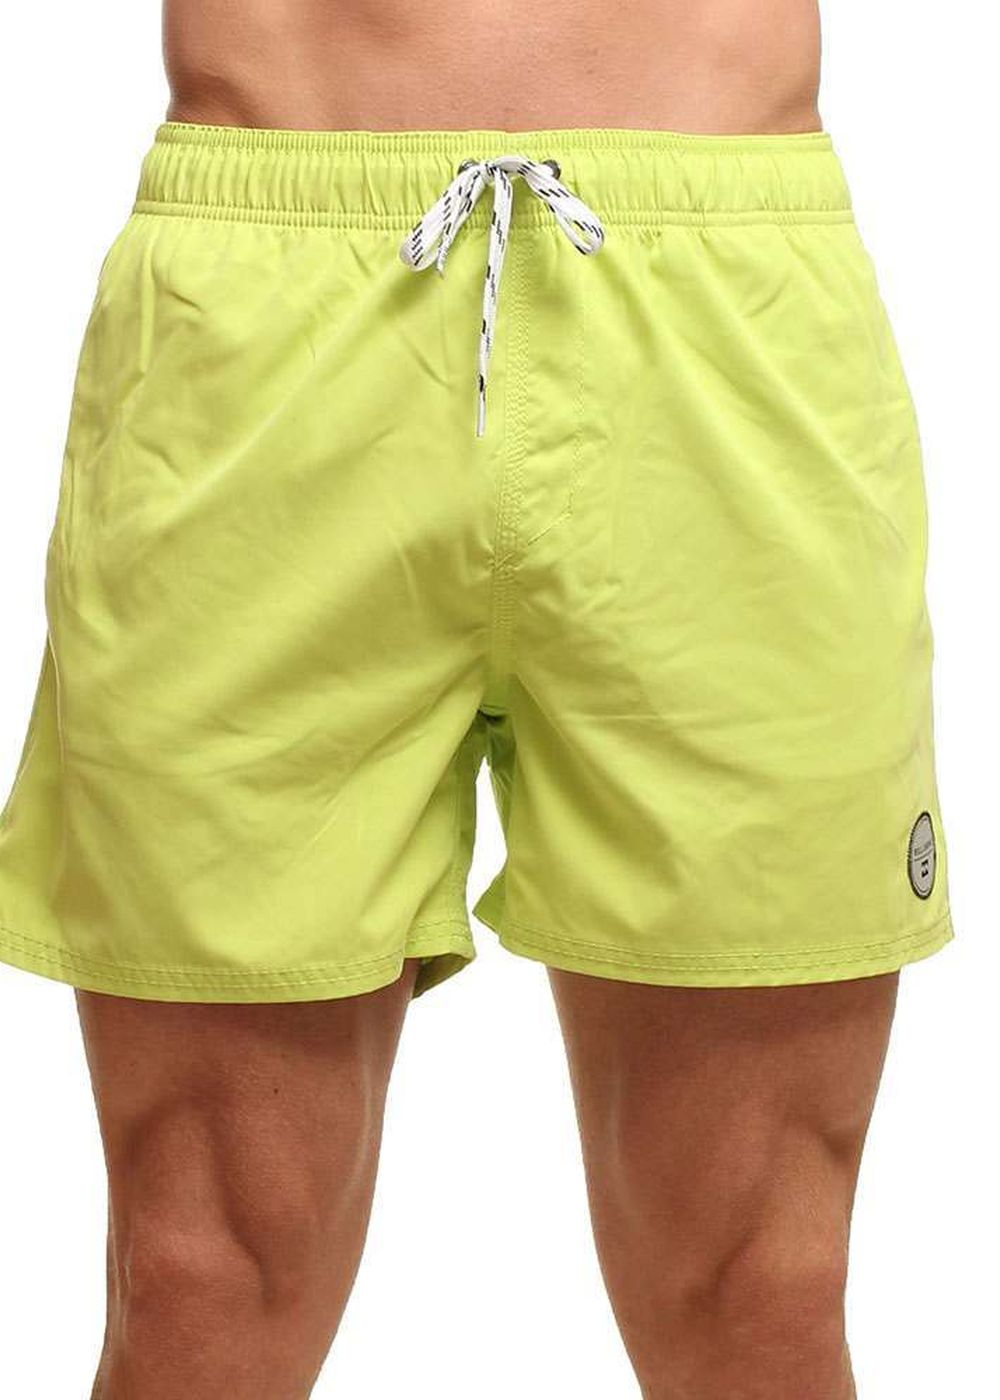 BILLABONG ALL DAY ELASTIC BOARDSHORTS Lime